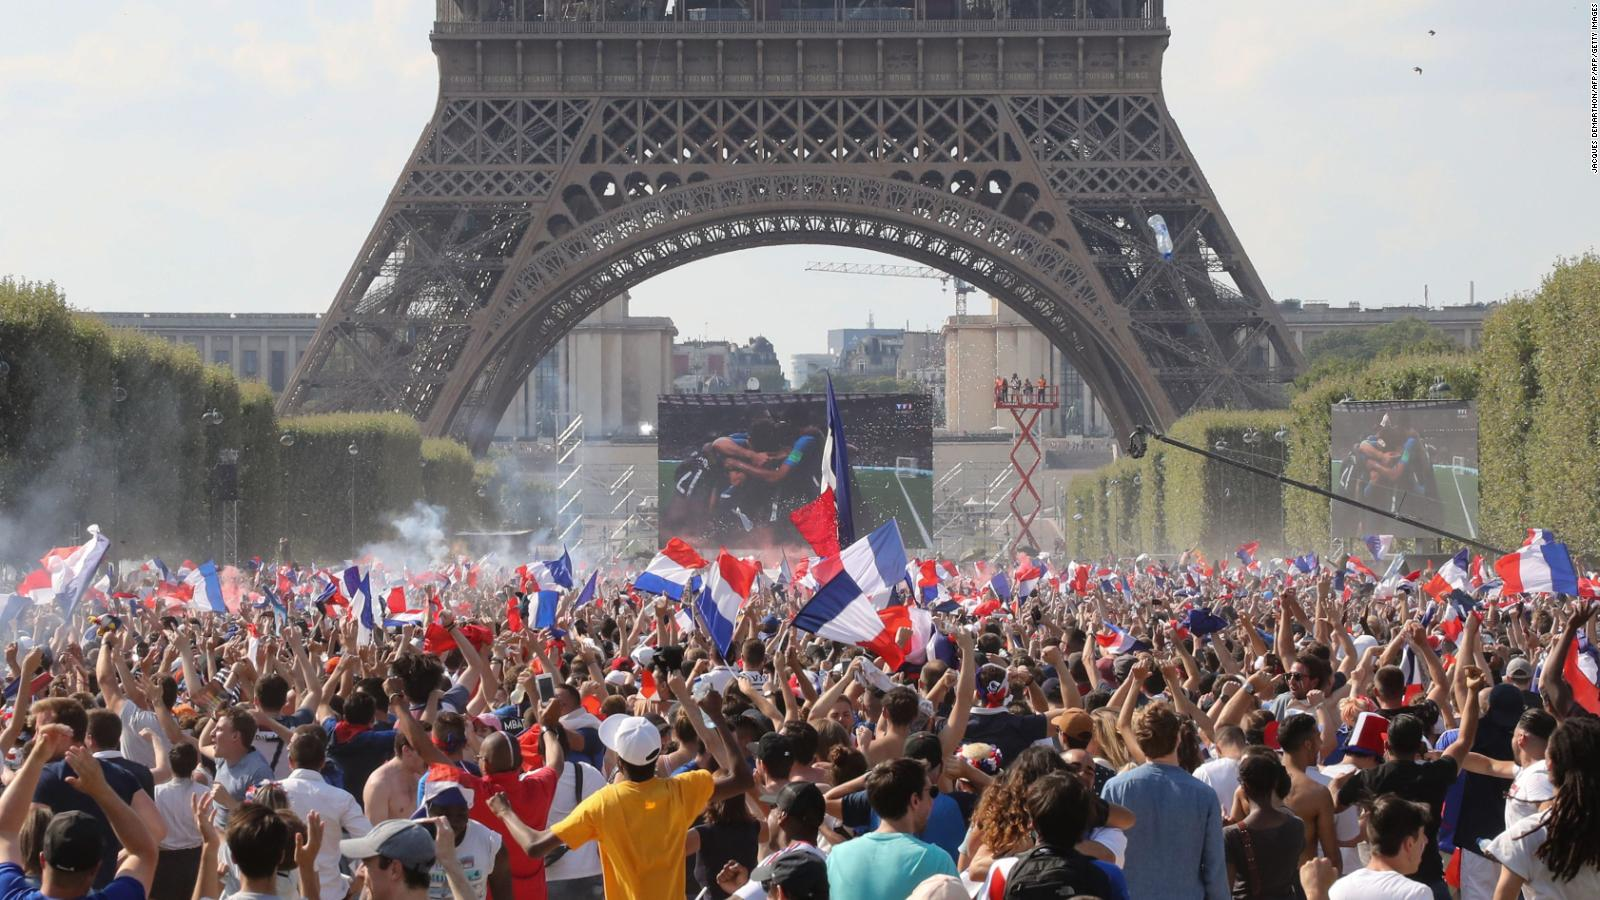 France World Cup Celebrations The Good The Bad And The Ugly Cnn